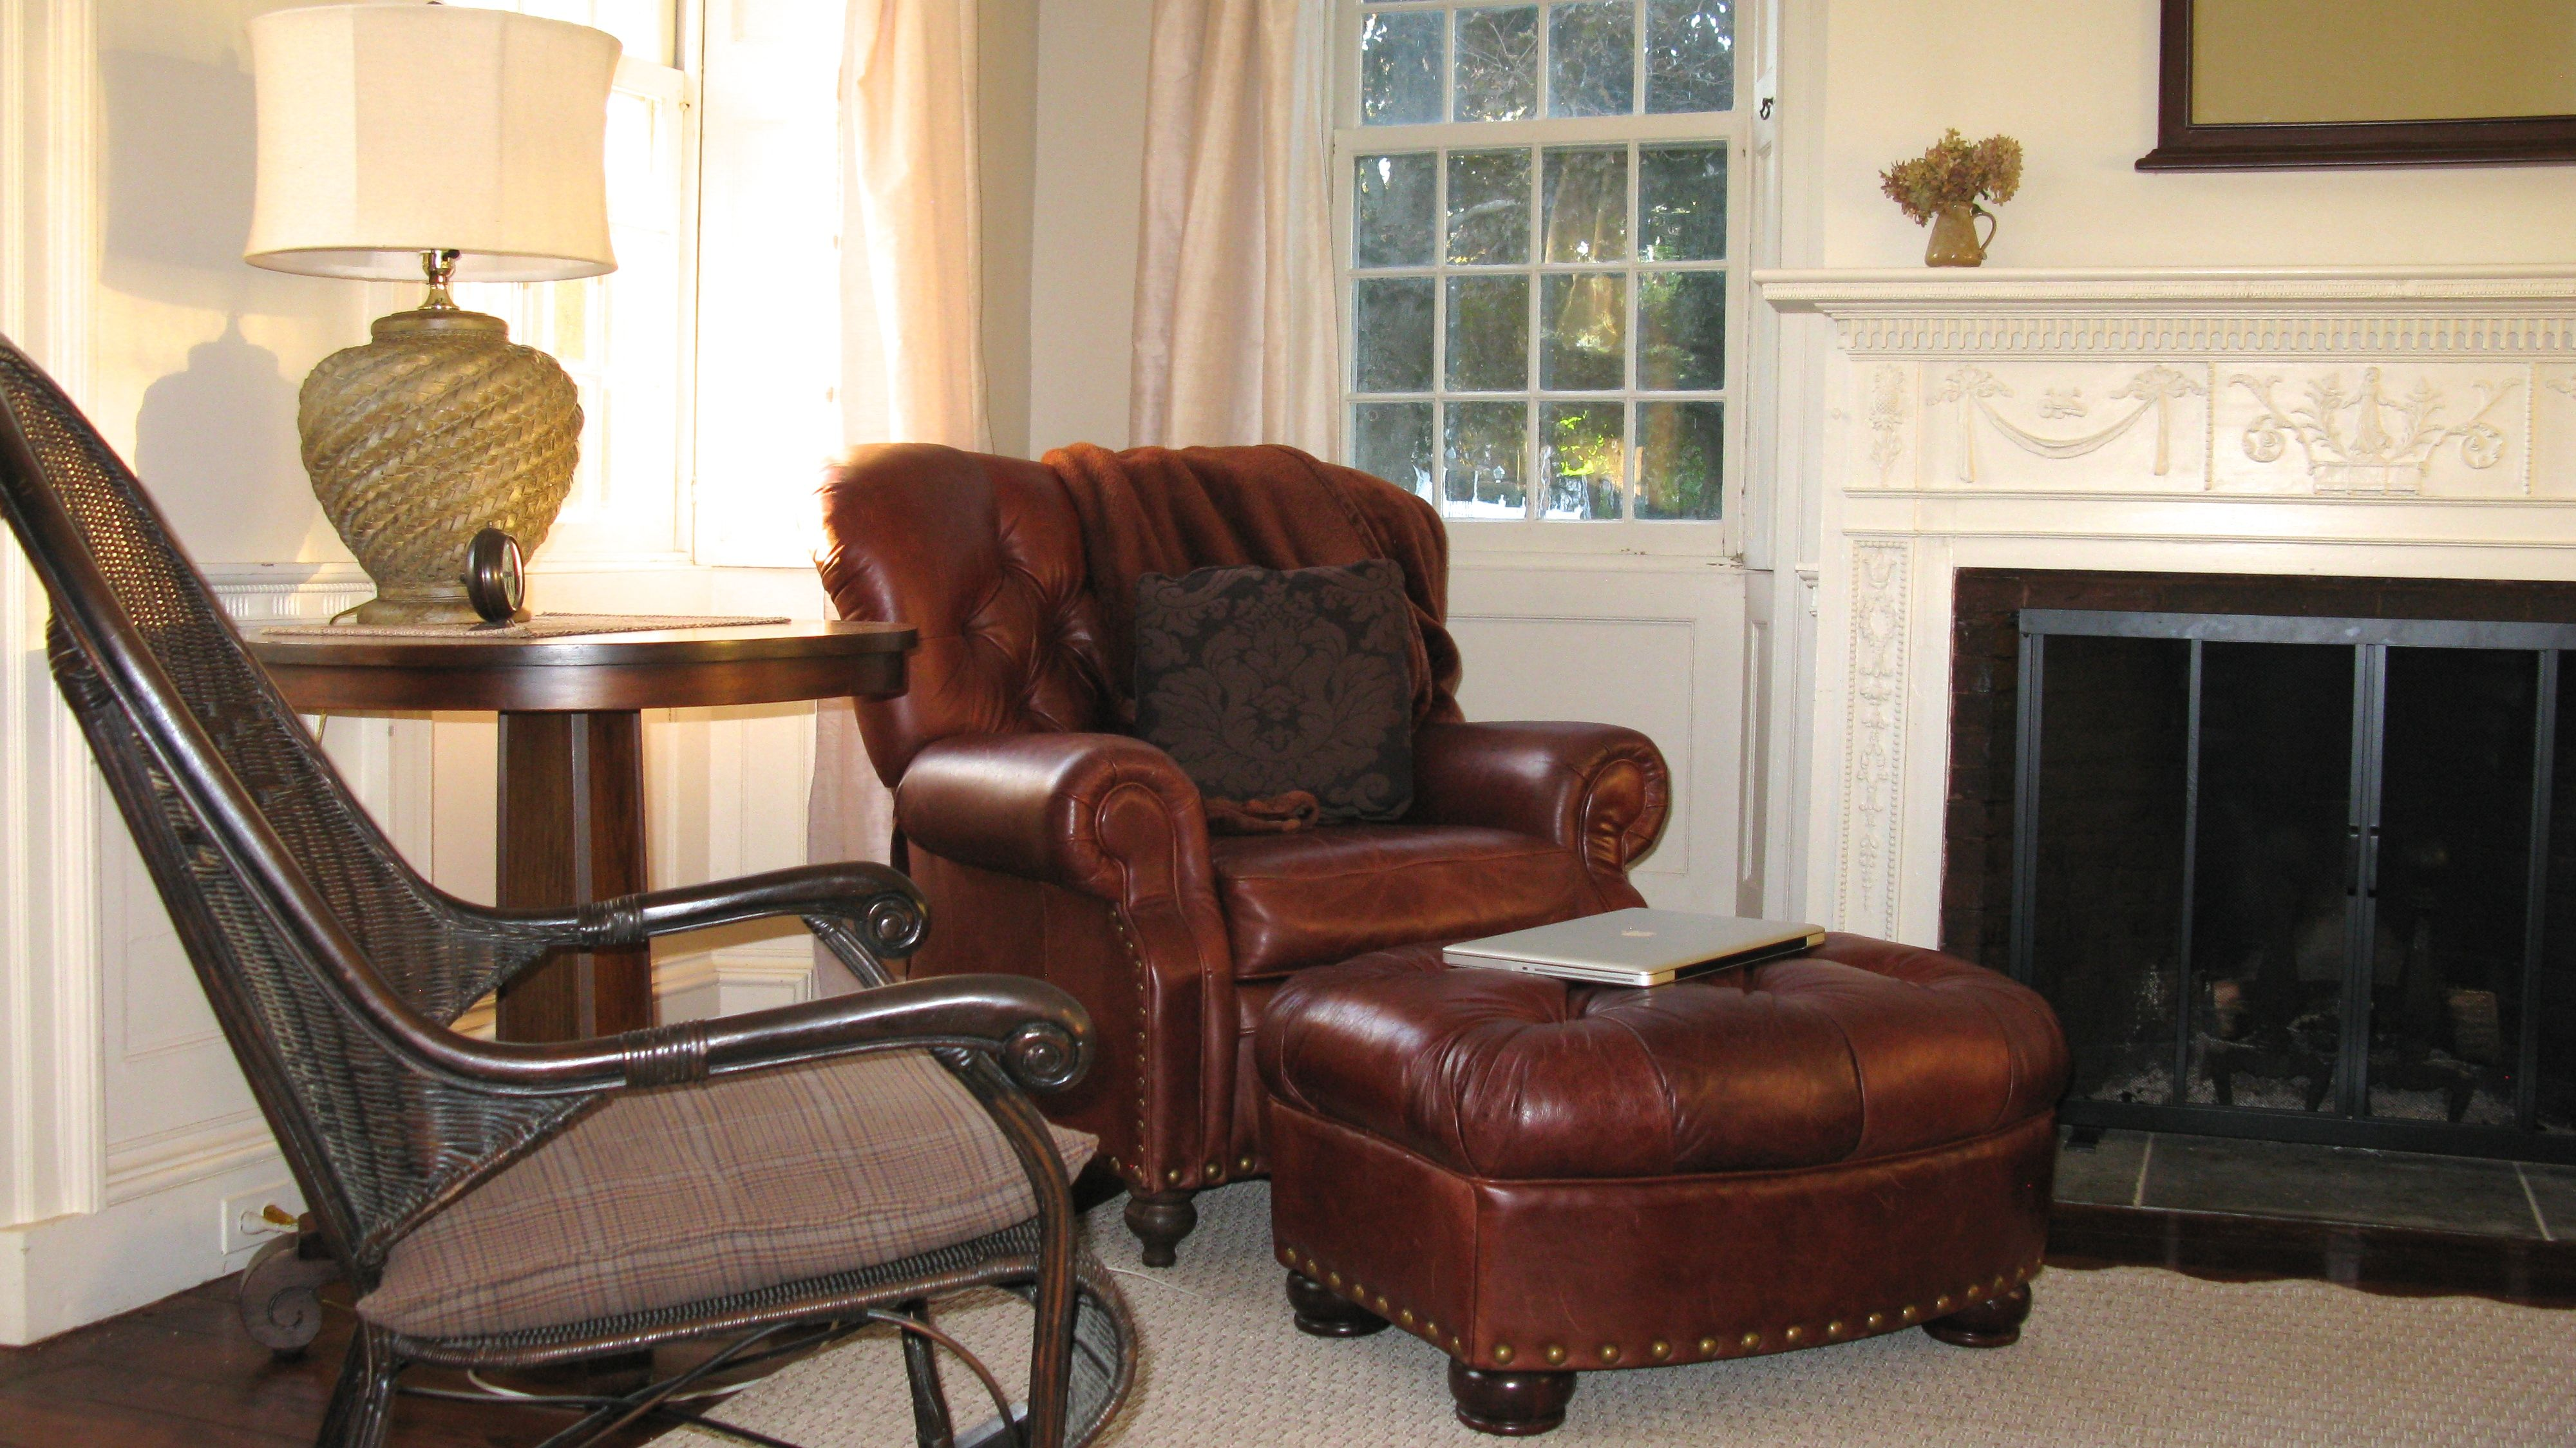 Tufted Leather Chair And Ottoman Fireplace Wicker Chair Sitting Room Living Family Living Rooms Parlor Room Family Room